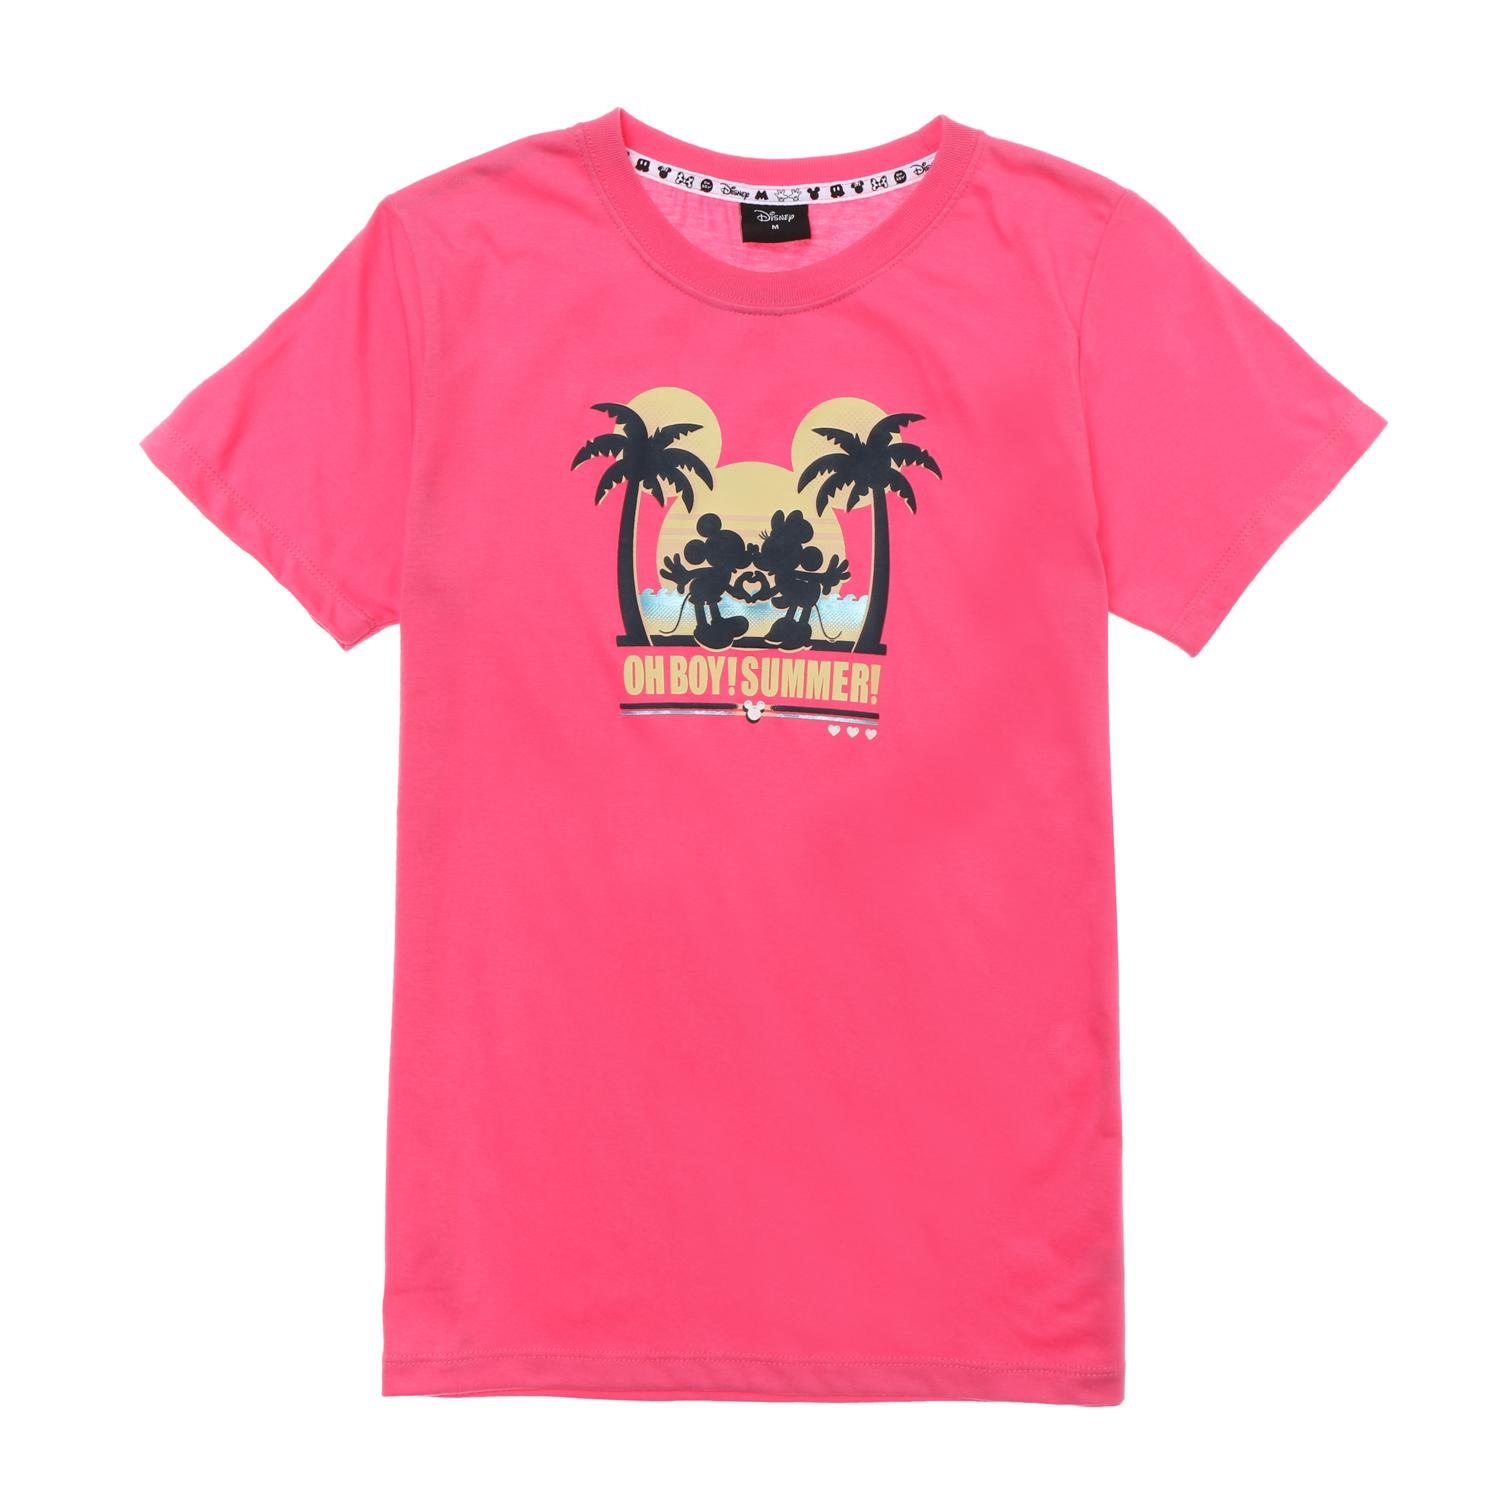 5349309554f Disney Minnie and Mickey Mouse Girls Teens Oh Boy Summer Graphic Tee in Pink